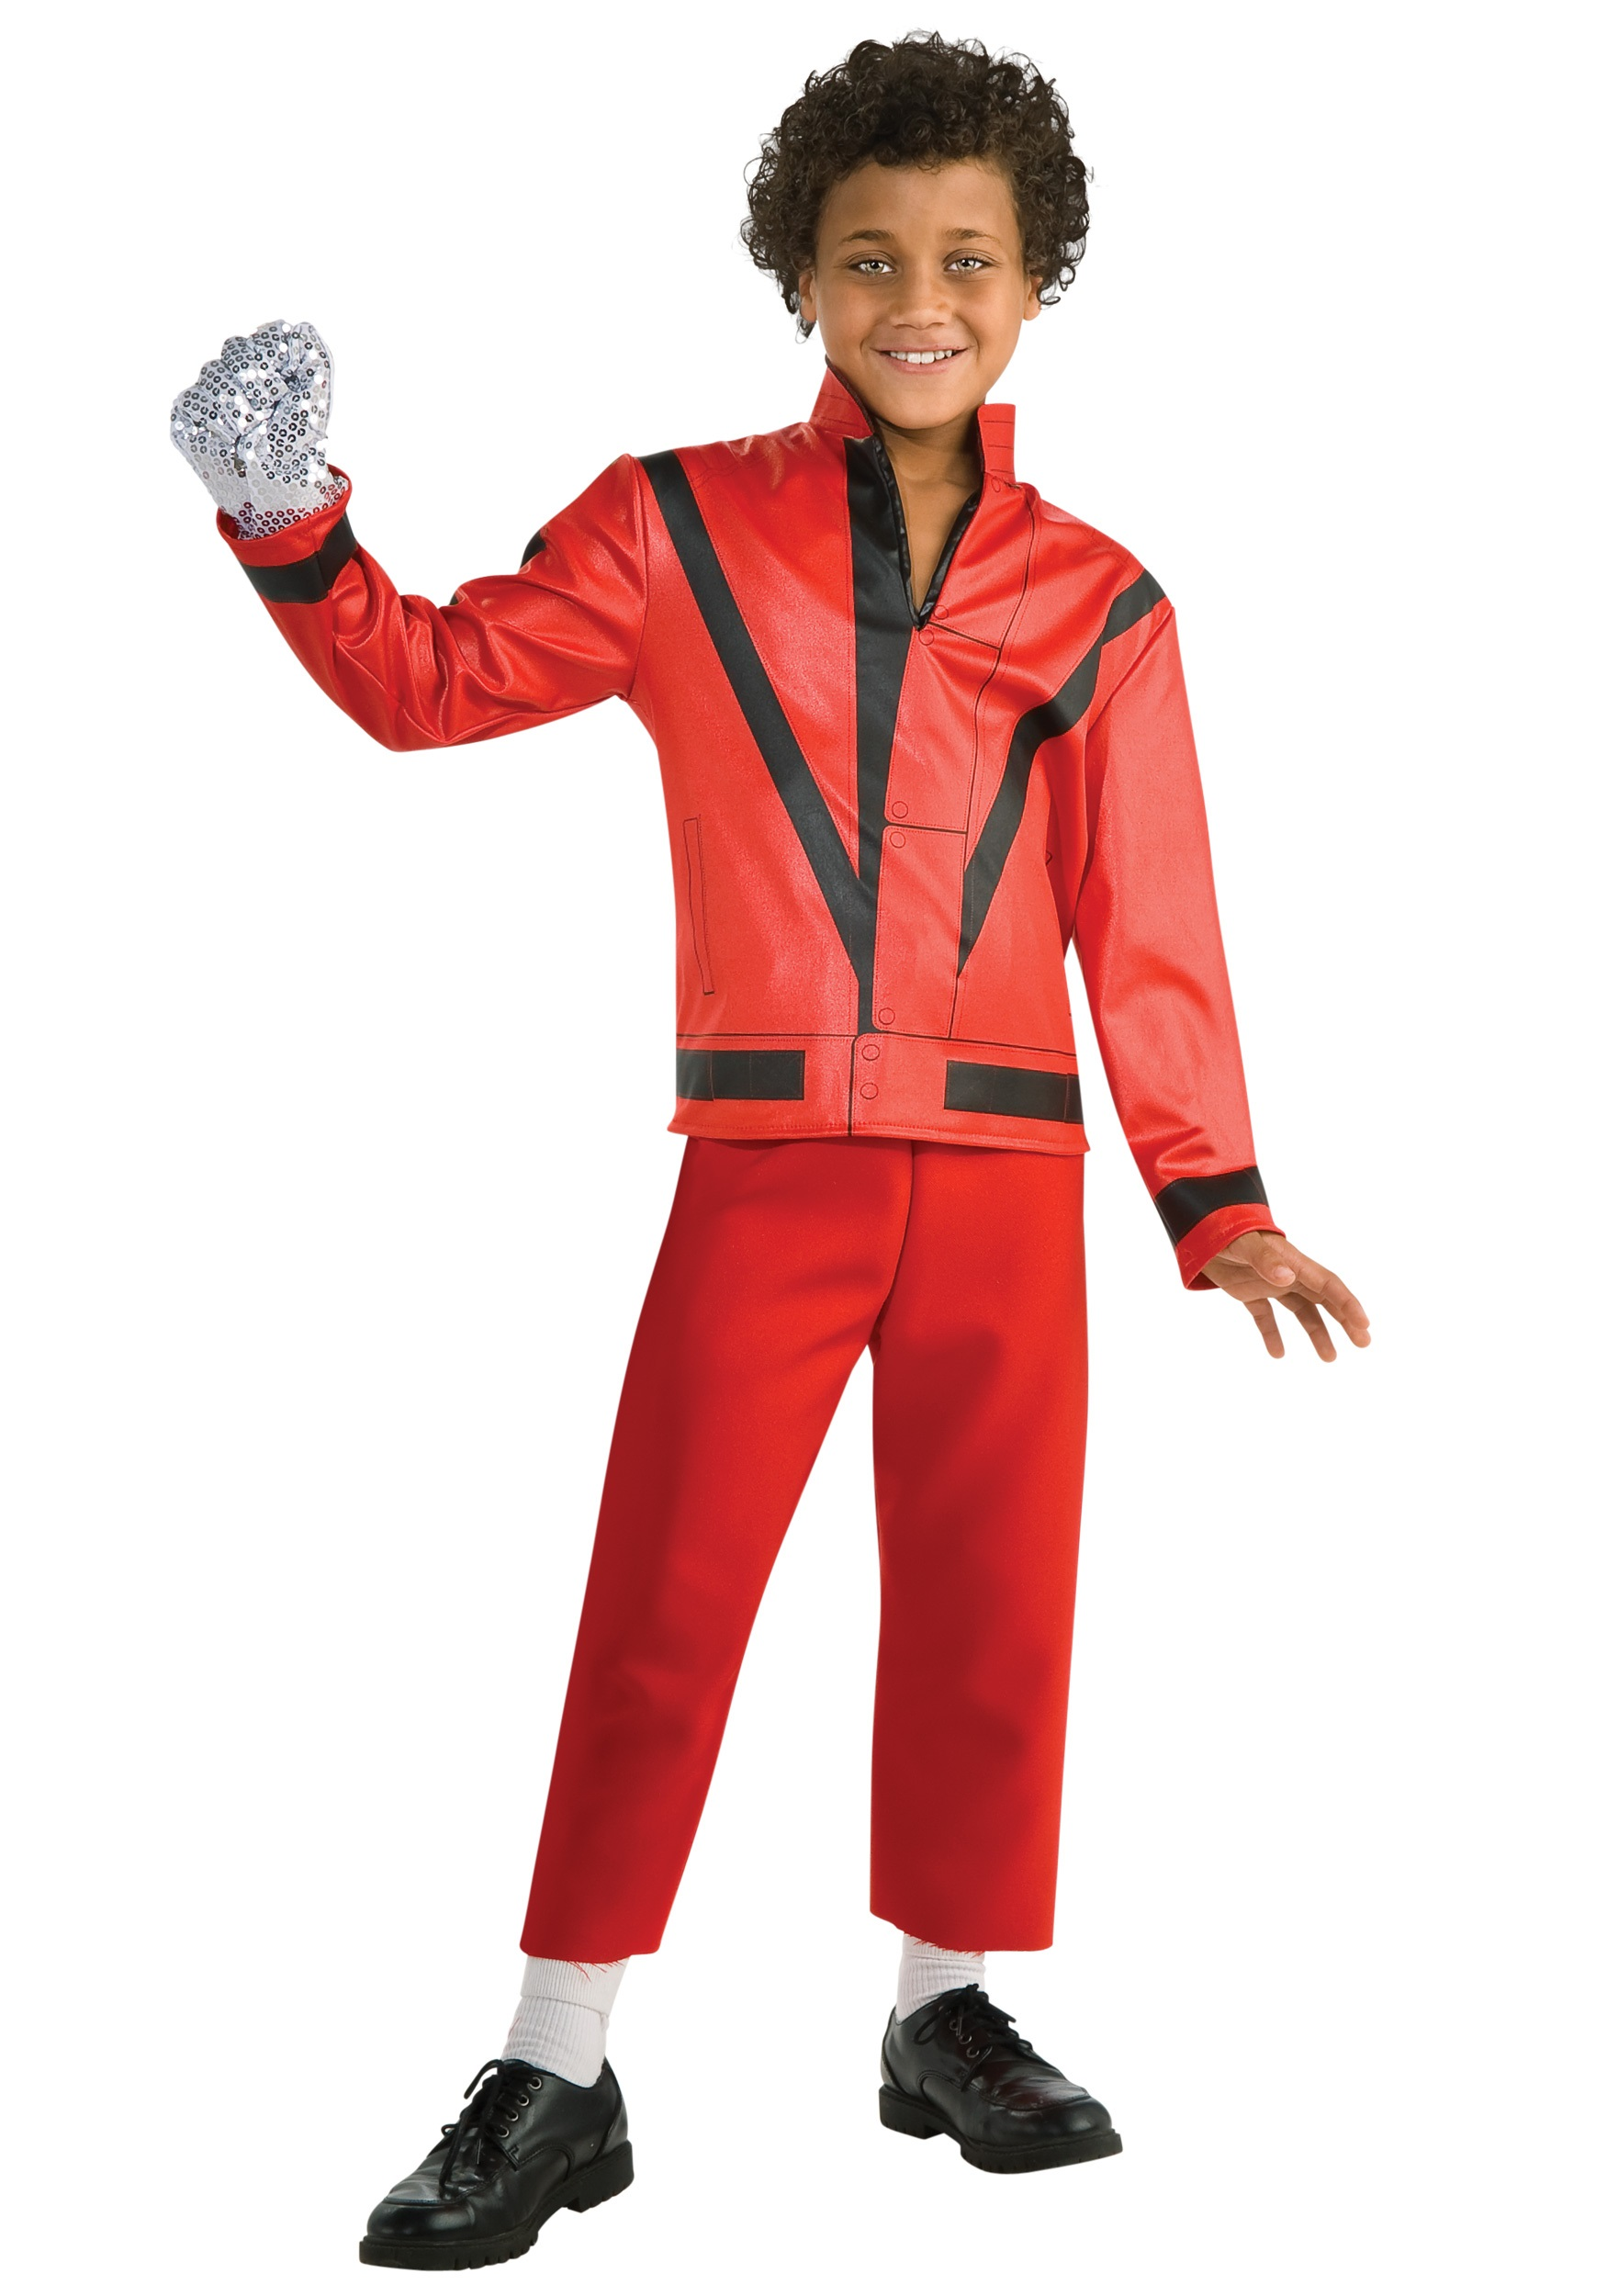 Child Red Thriller Jacket  sc 1 st  Halloween Costumes & Celebrity Costumes - Madonna Michael Jackson Lady Gaga Costume